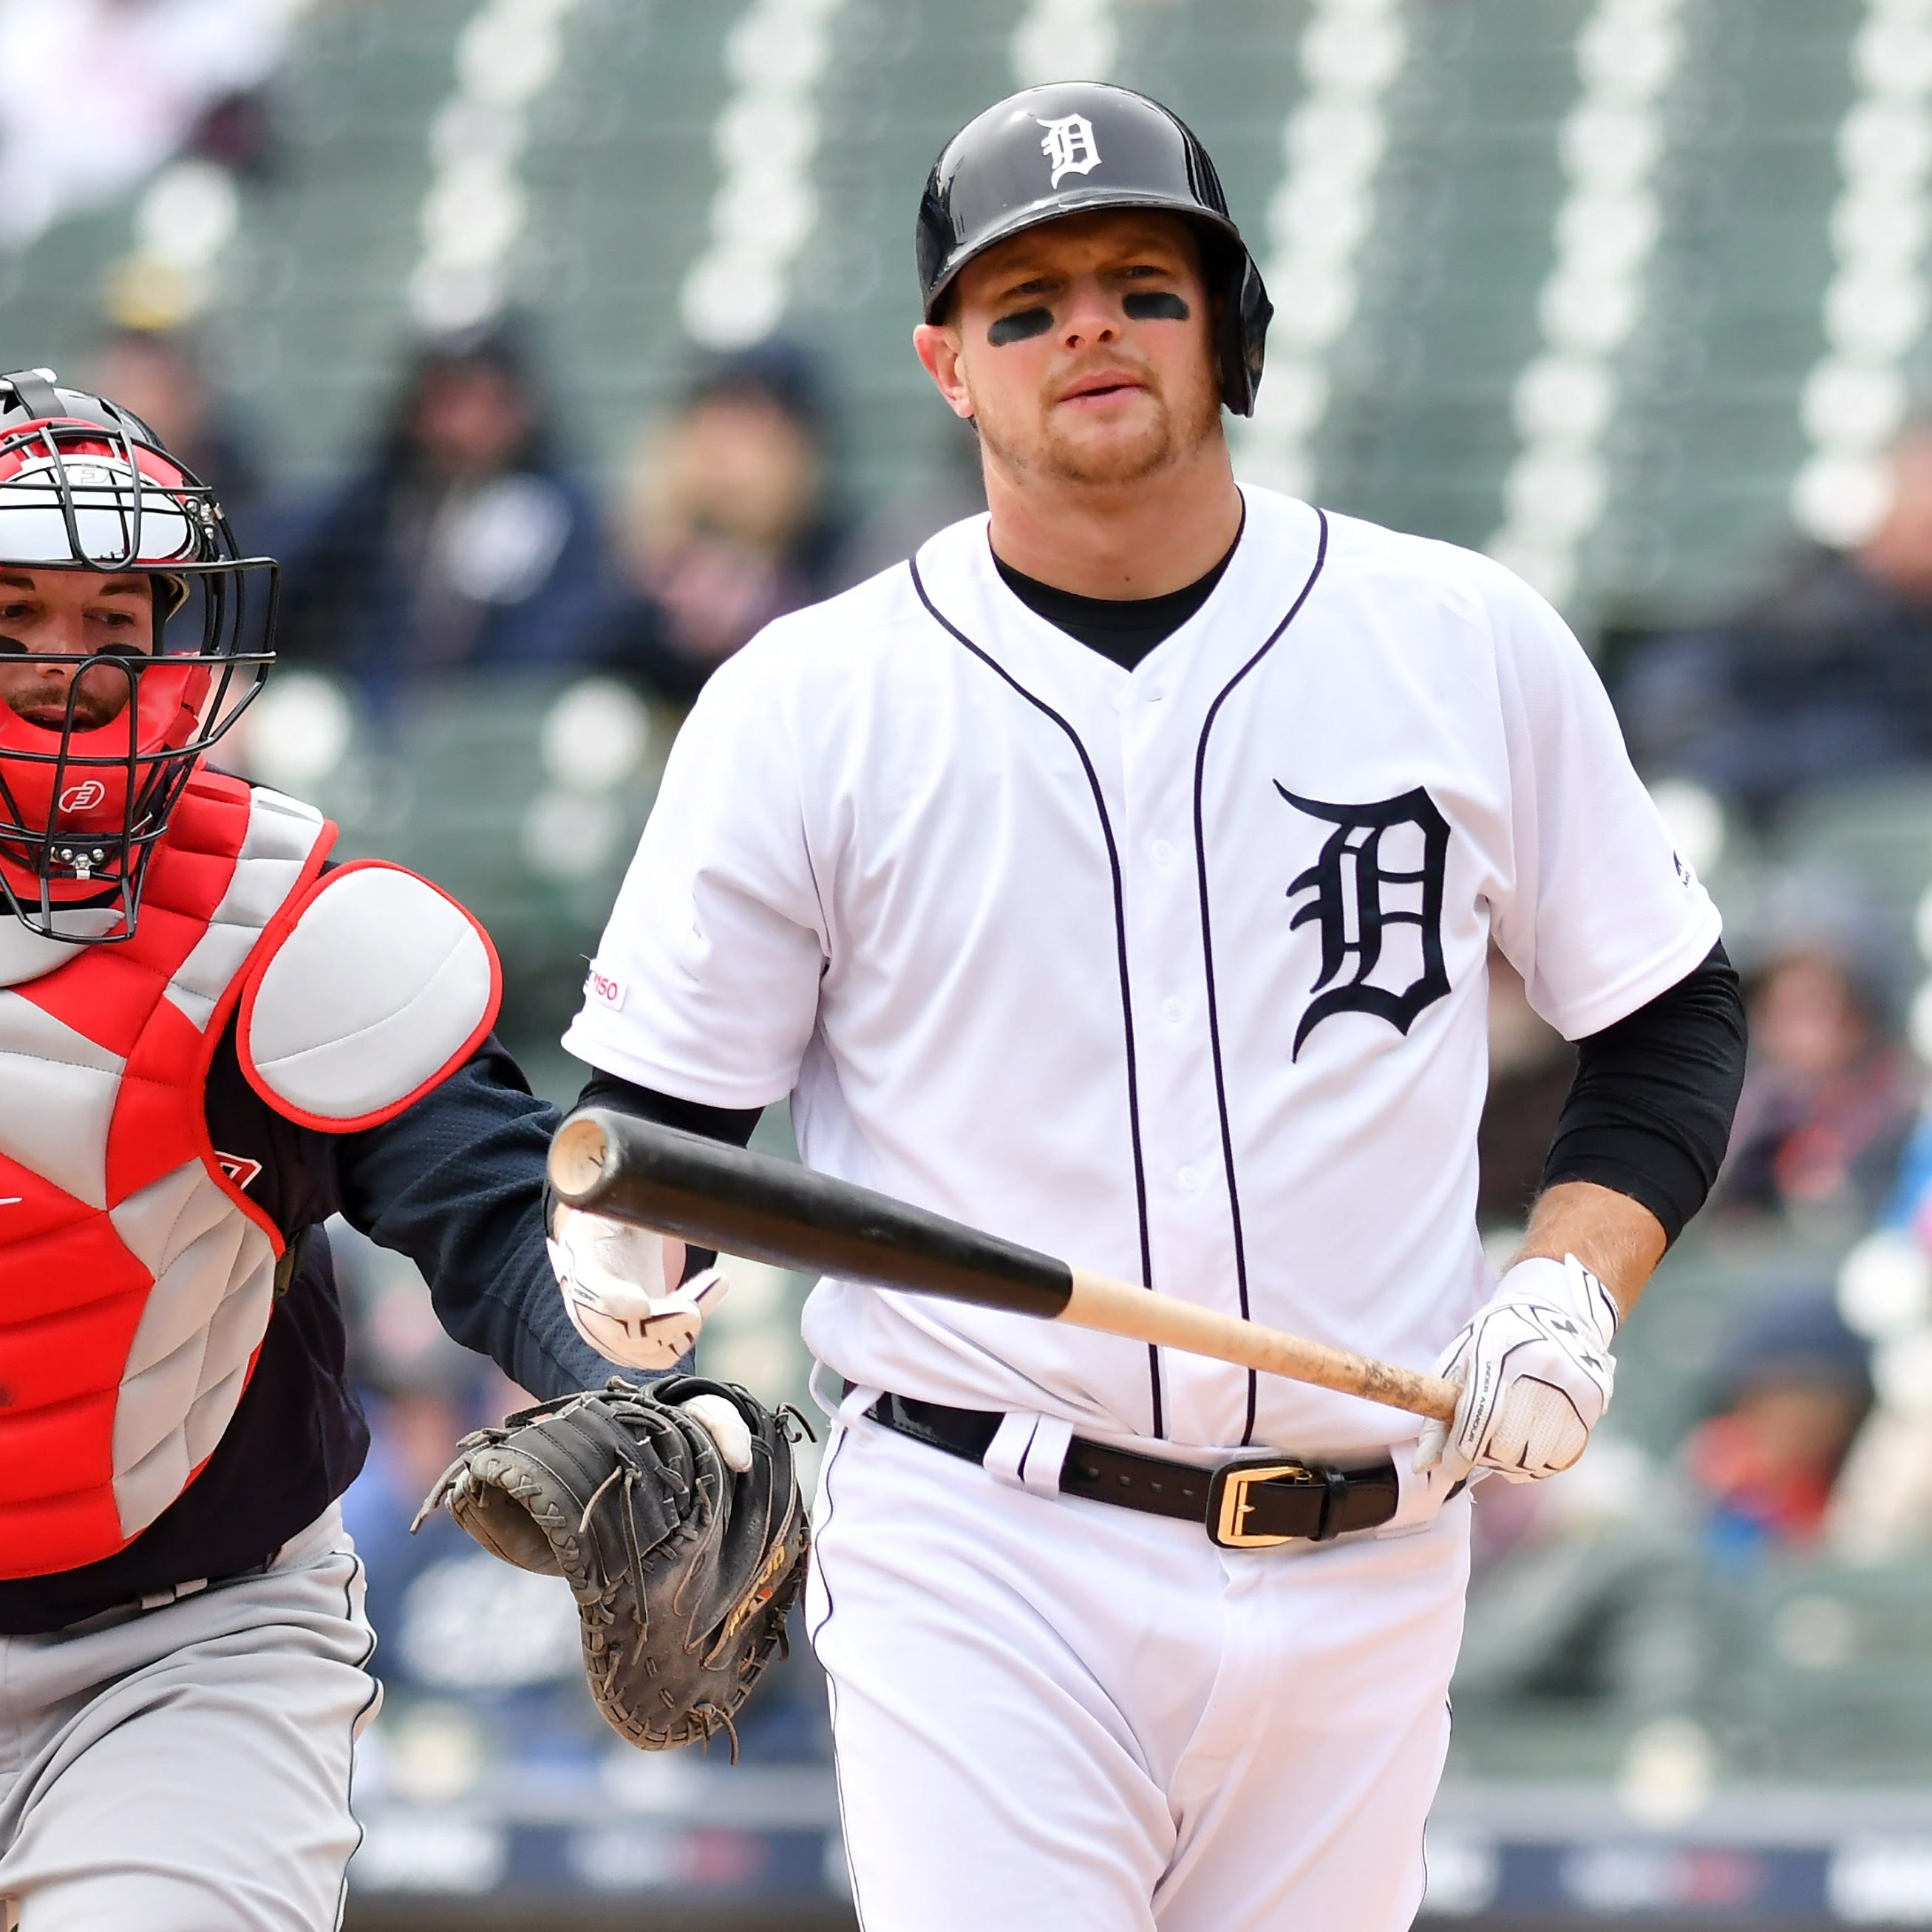 'We didn't do enough': Tigers bats go quietly to Indians; Friday game postponed